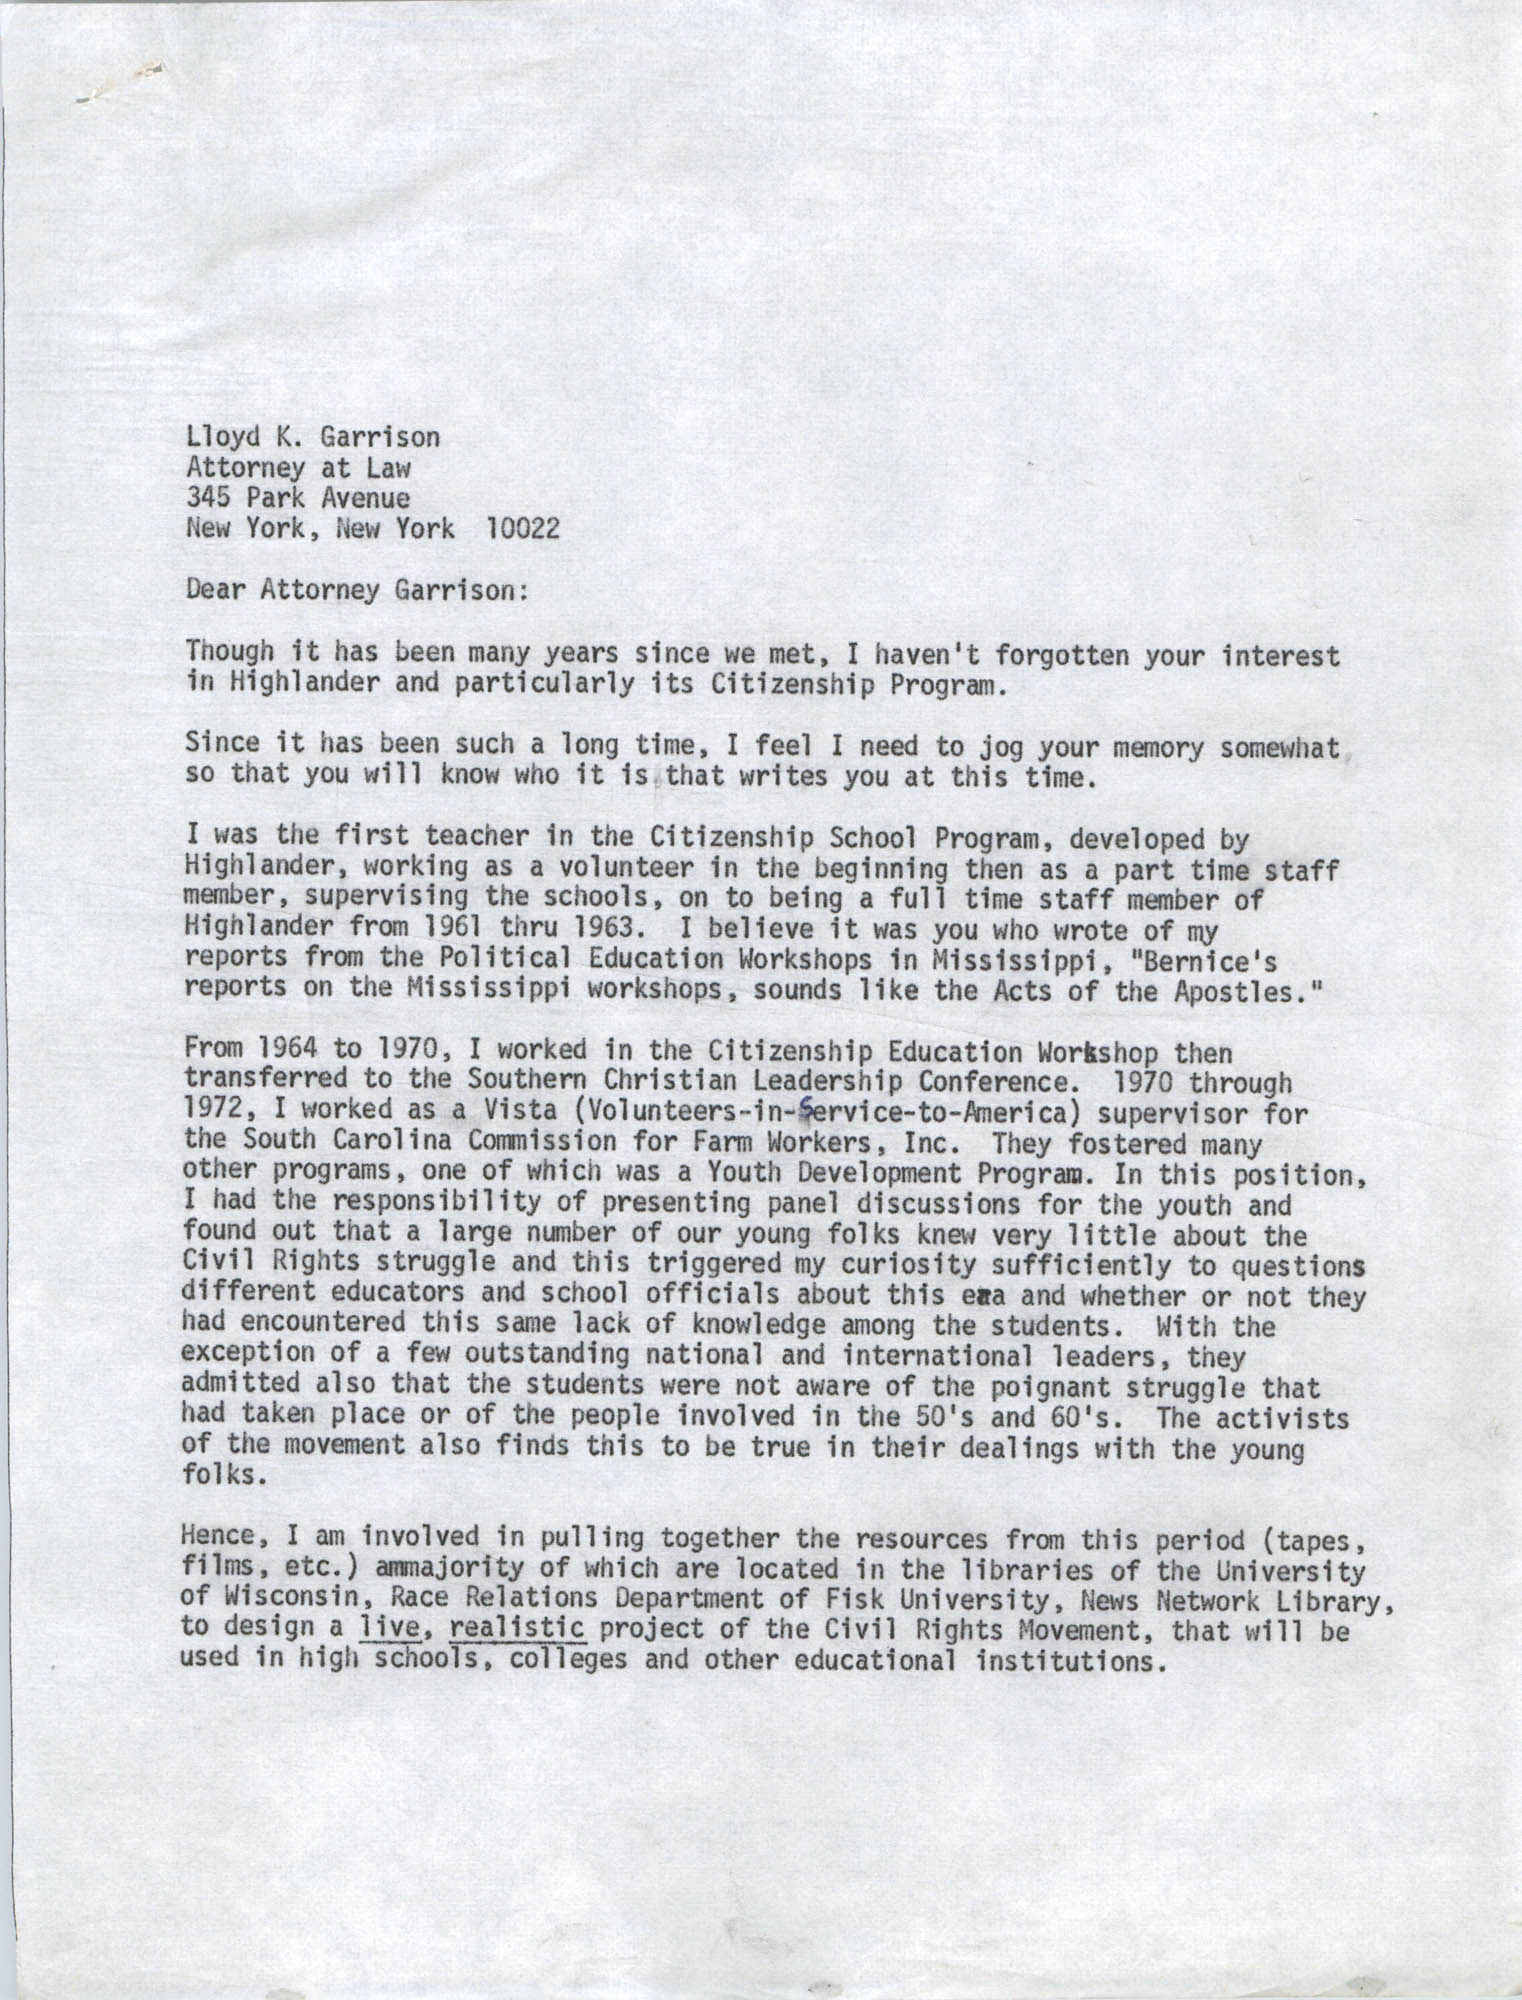 Letter from Bernice Robinson to Lloyd K. Garrison, May 4, 1973, Draft Page 1